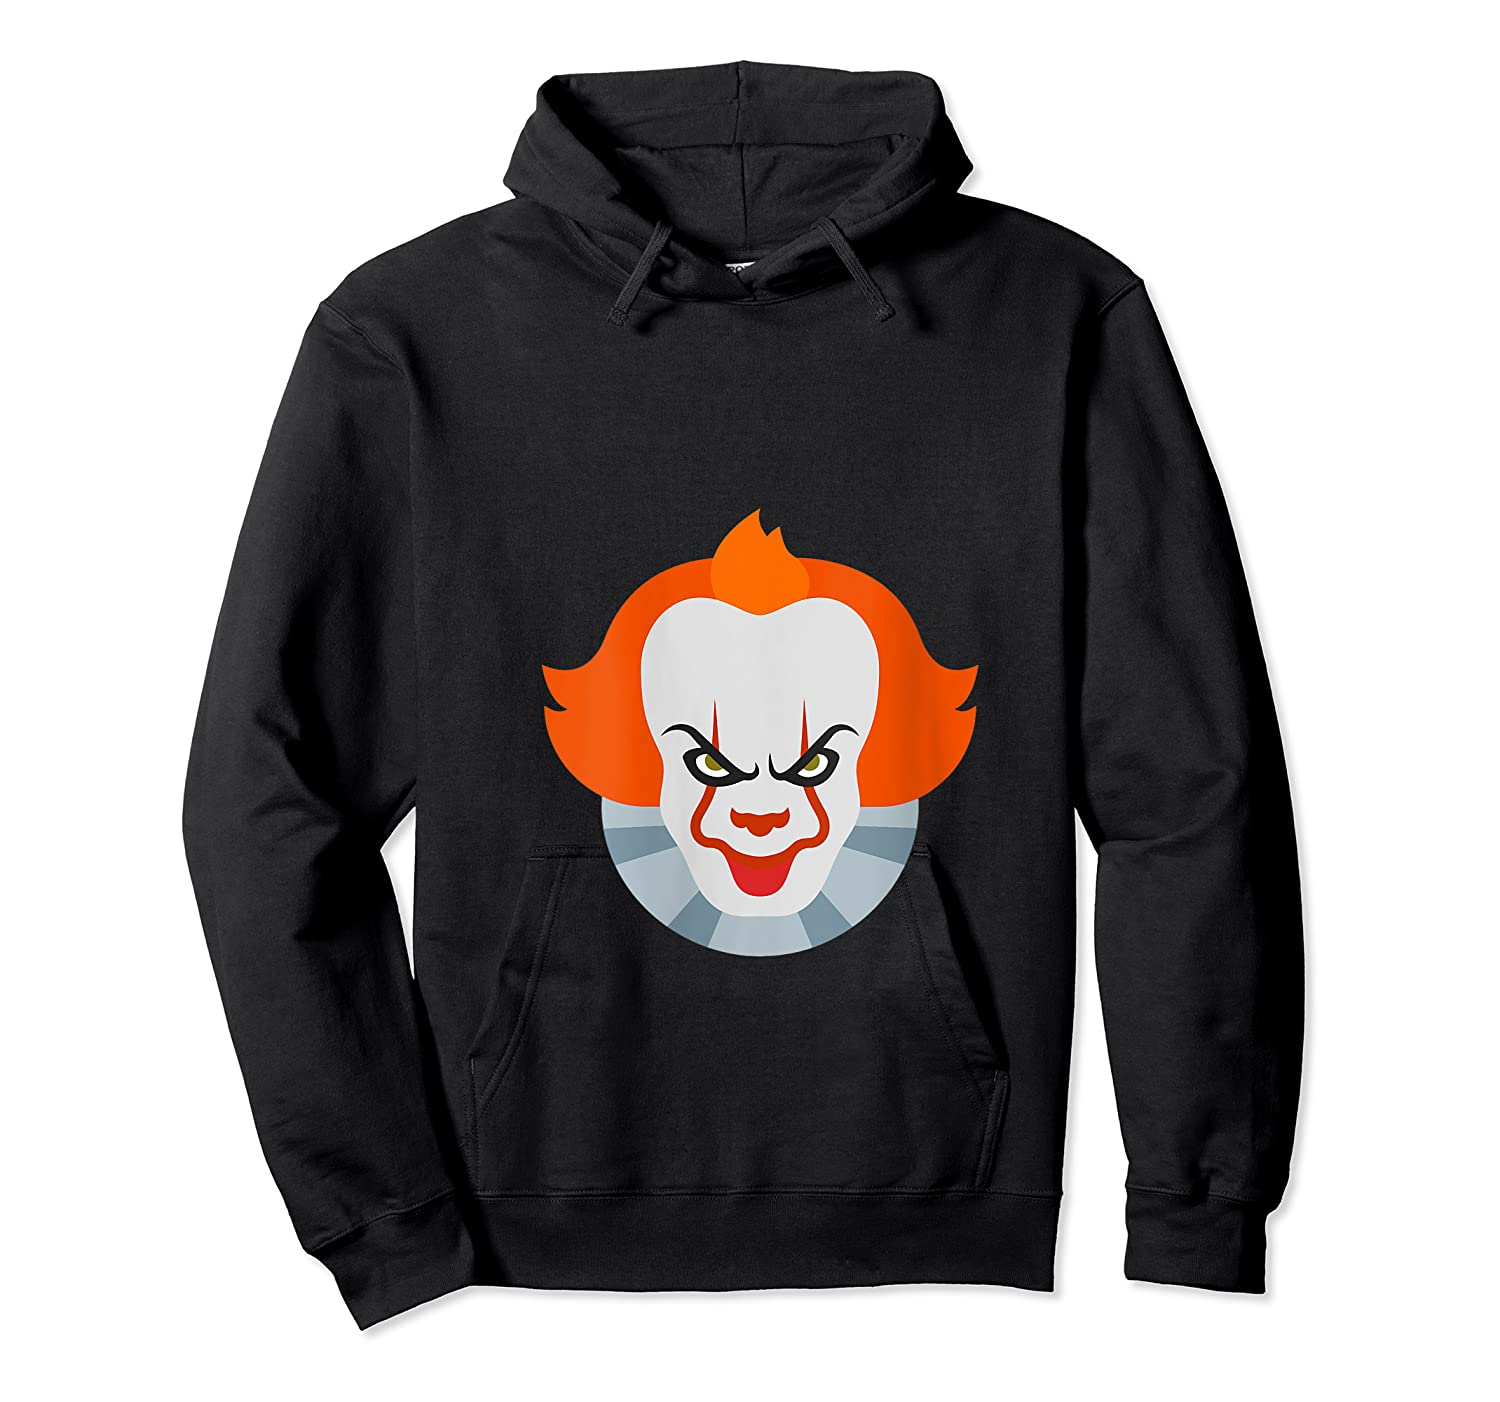 Scary Clown Halloween Gift T-shirt Unisex Pullover Hoodie